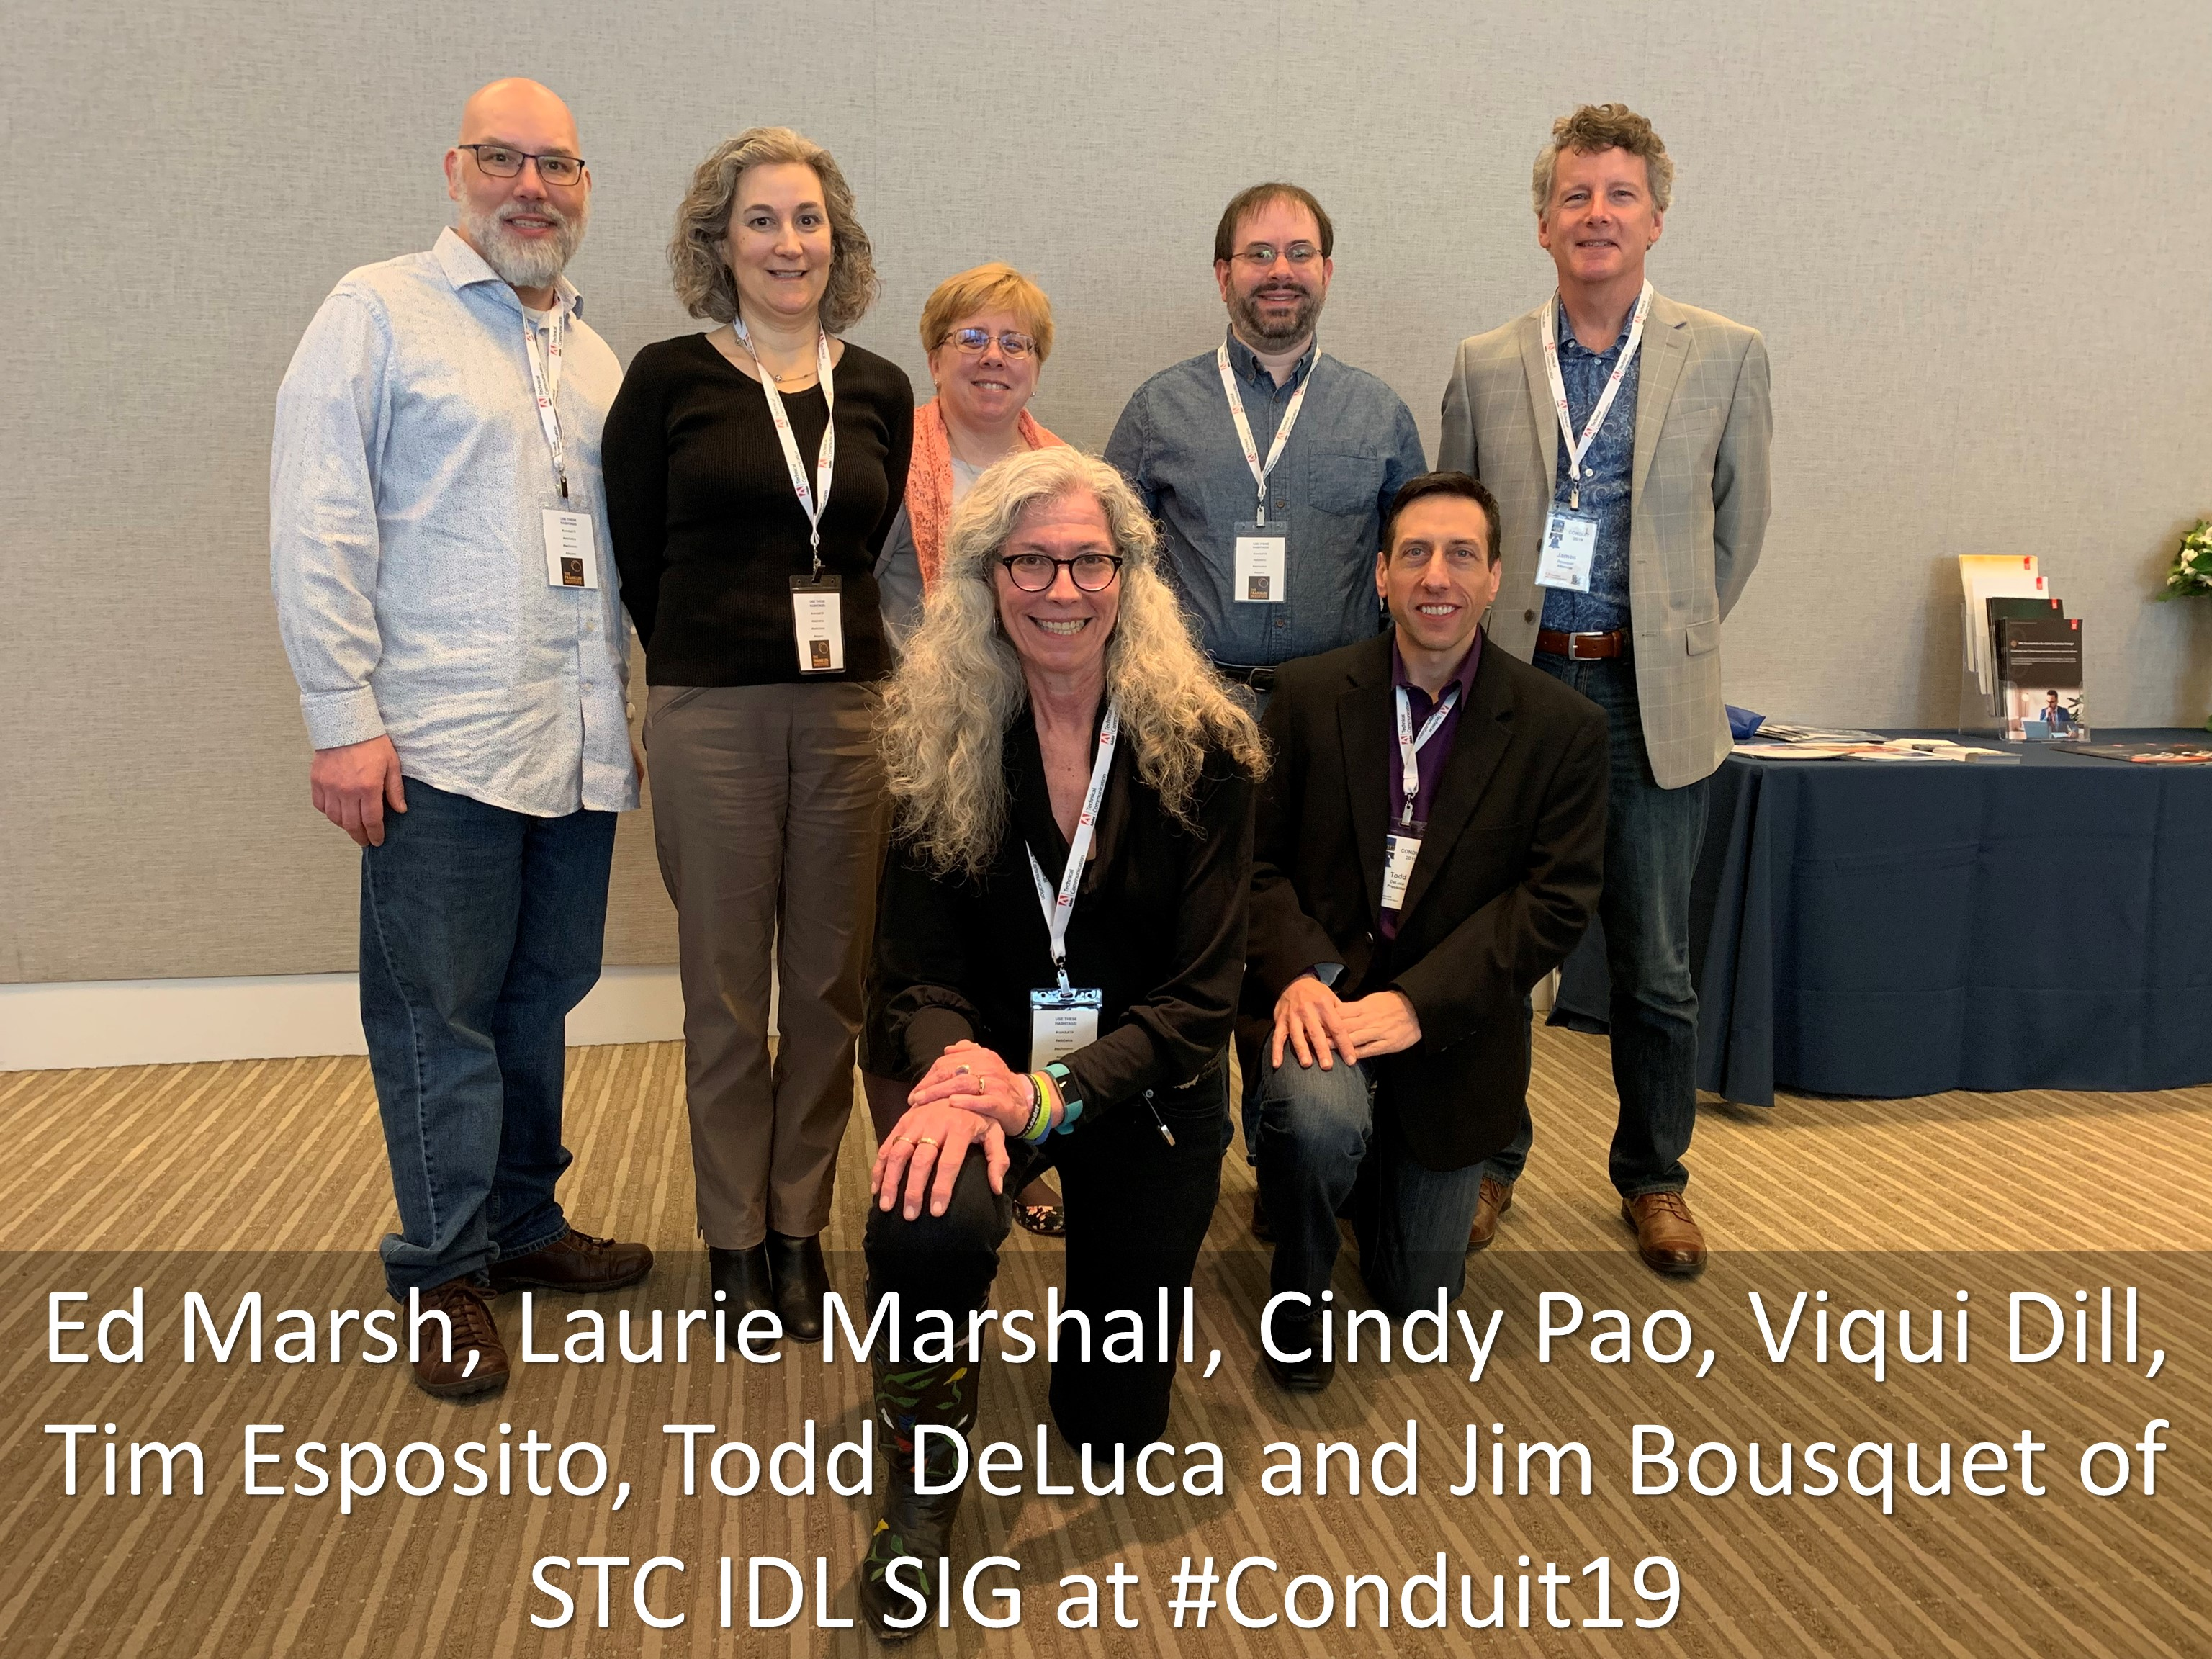 21 Ed Marsh Laurie Marshall Cindy Pao Viqui Dill Tim Esposito Todd DeLuca and Jim Bousquet of STC IDL SIG at Conduit19